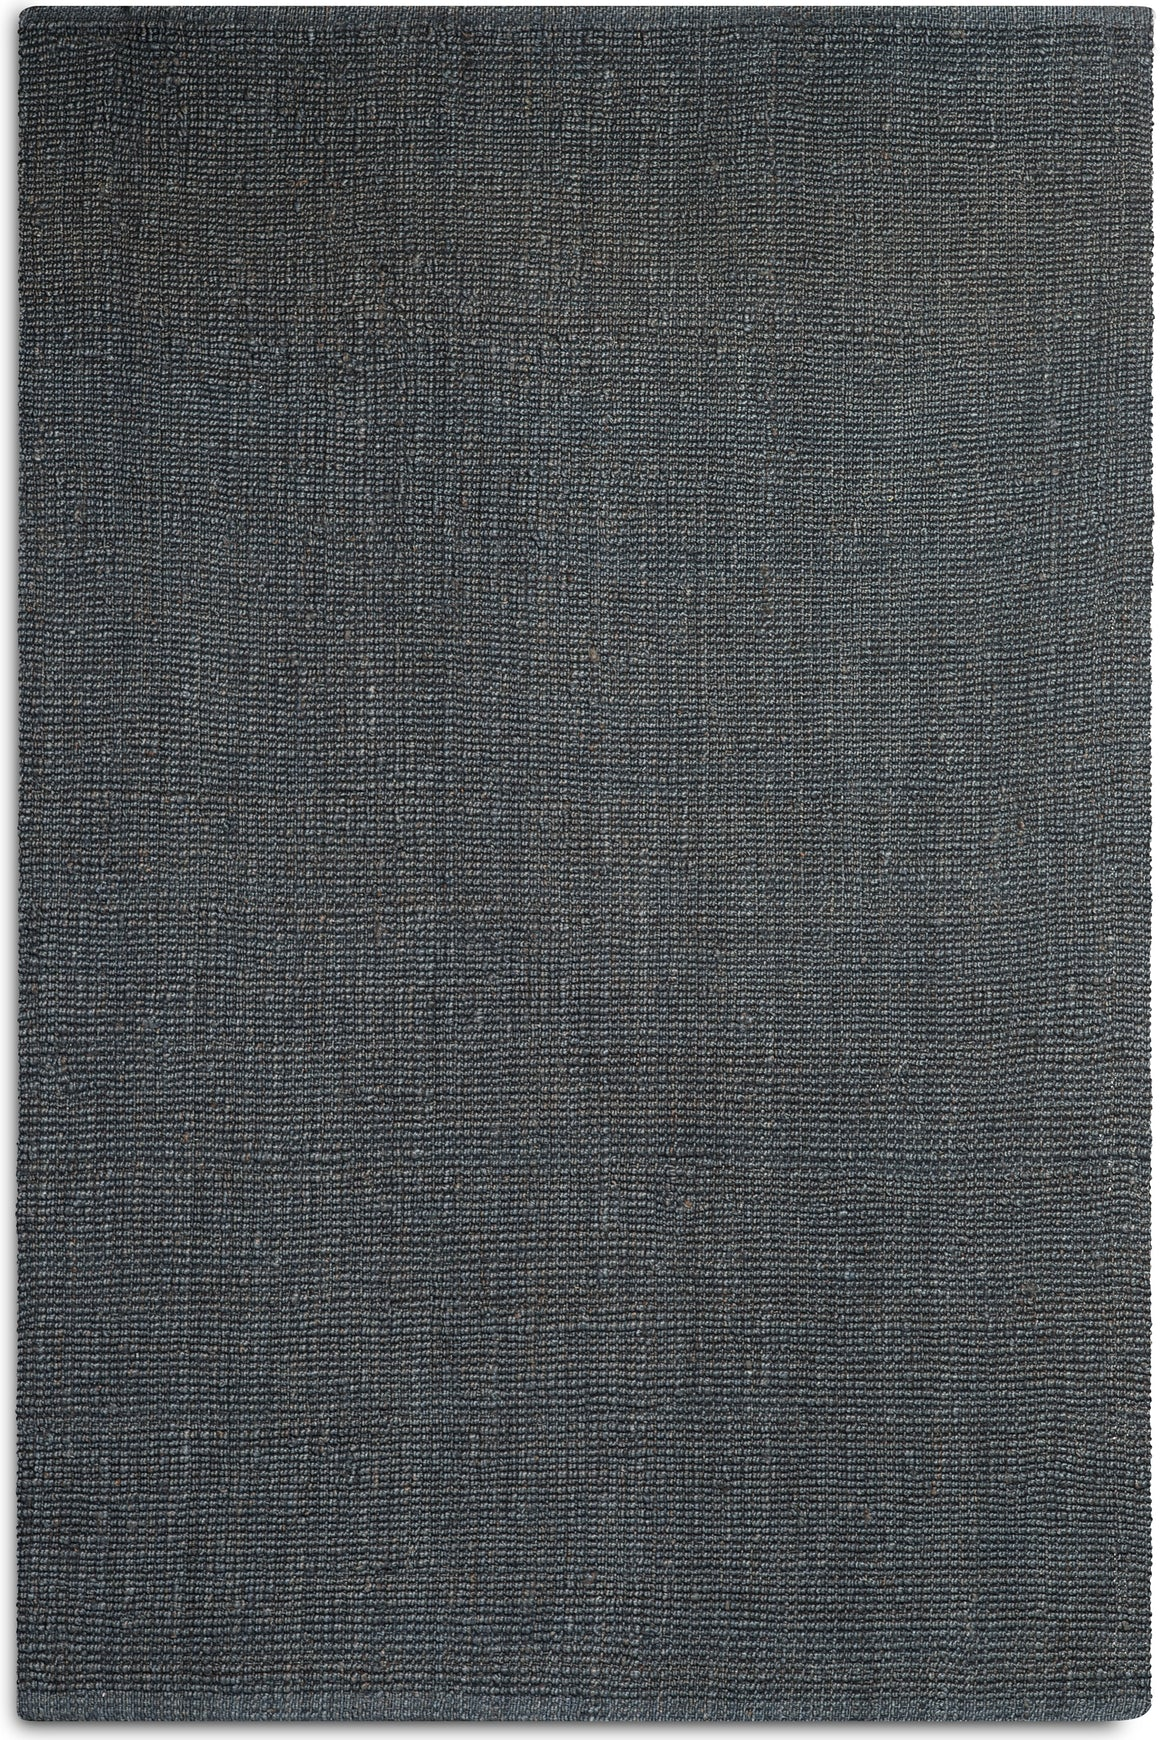 Tapete Jute Nestra Rug Oxford Grey